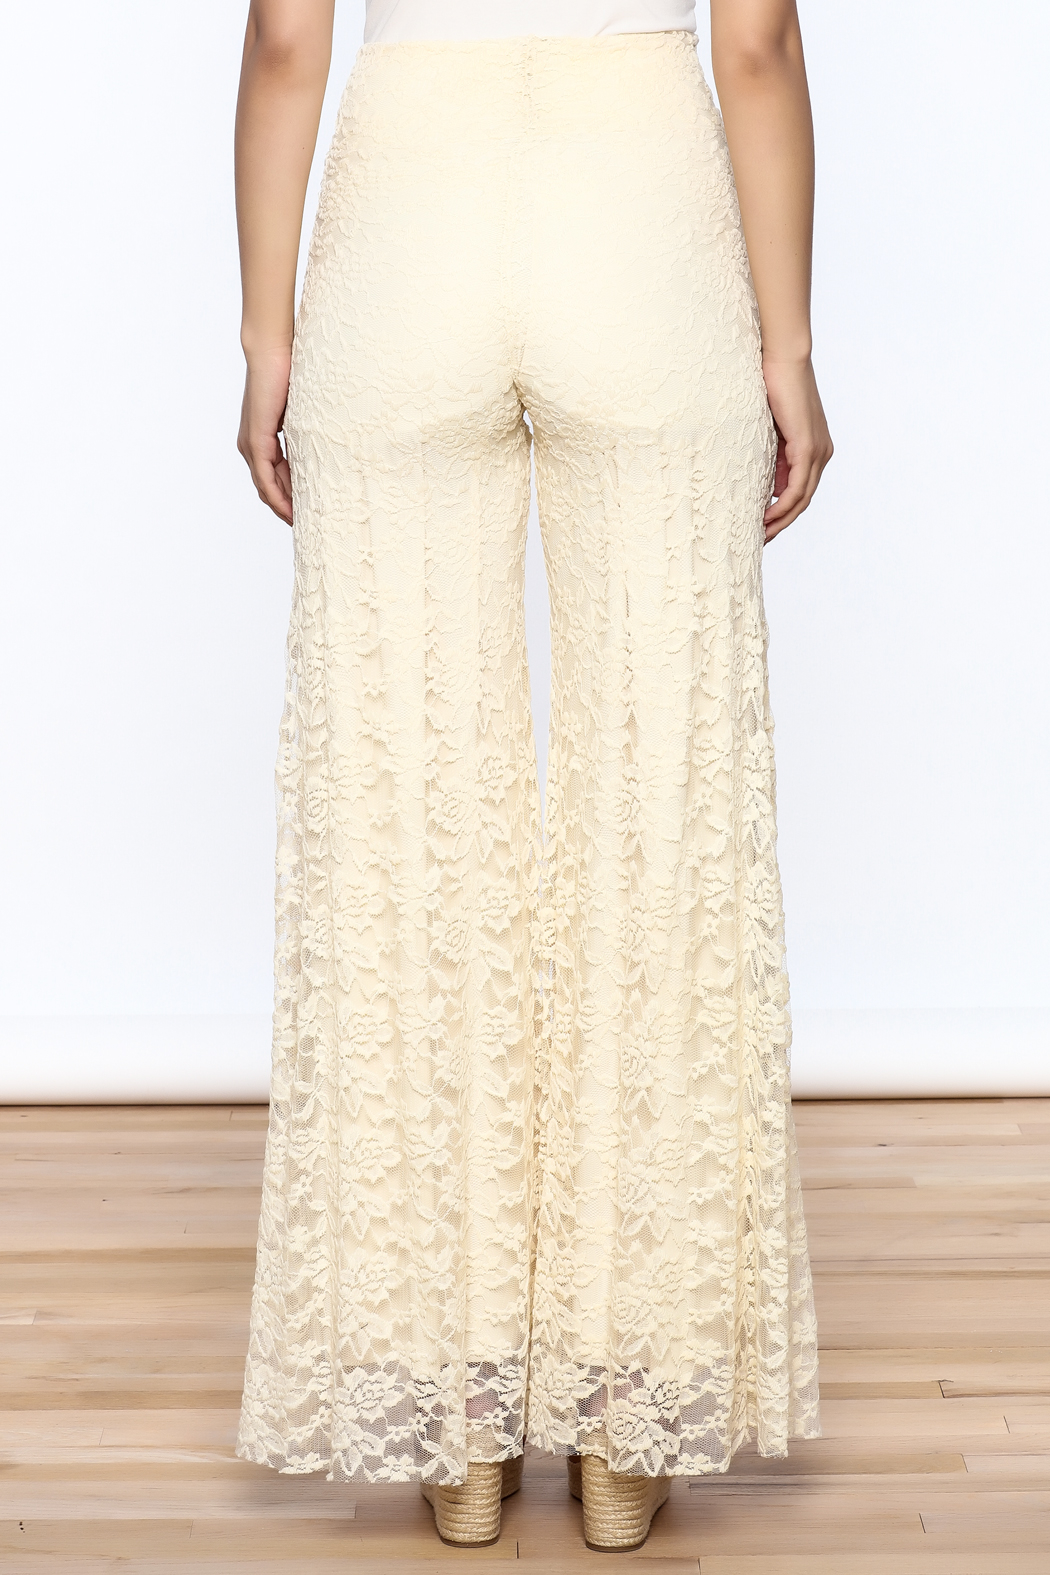 Sharon Max ivory Lace Palazzo Pants - Back Cropped Image